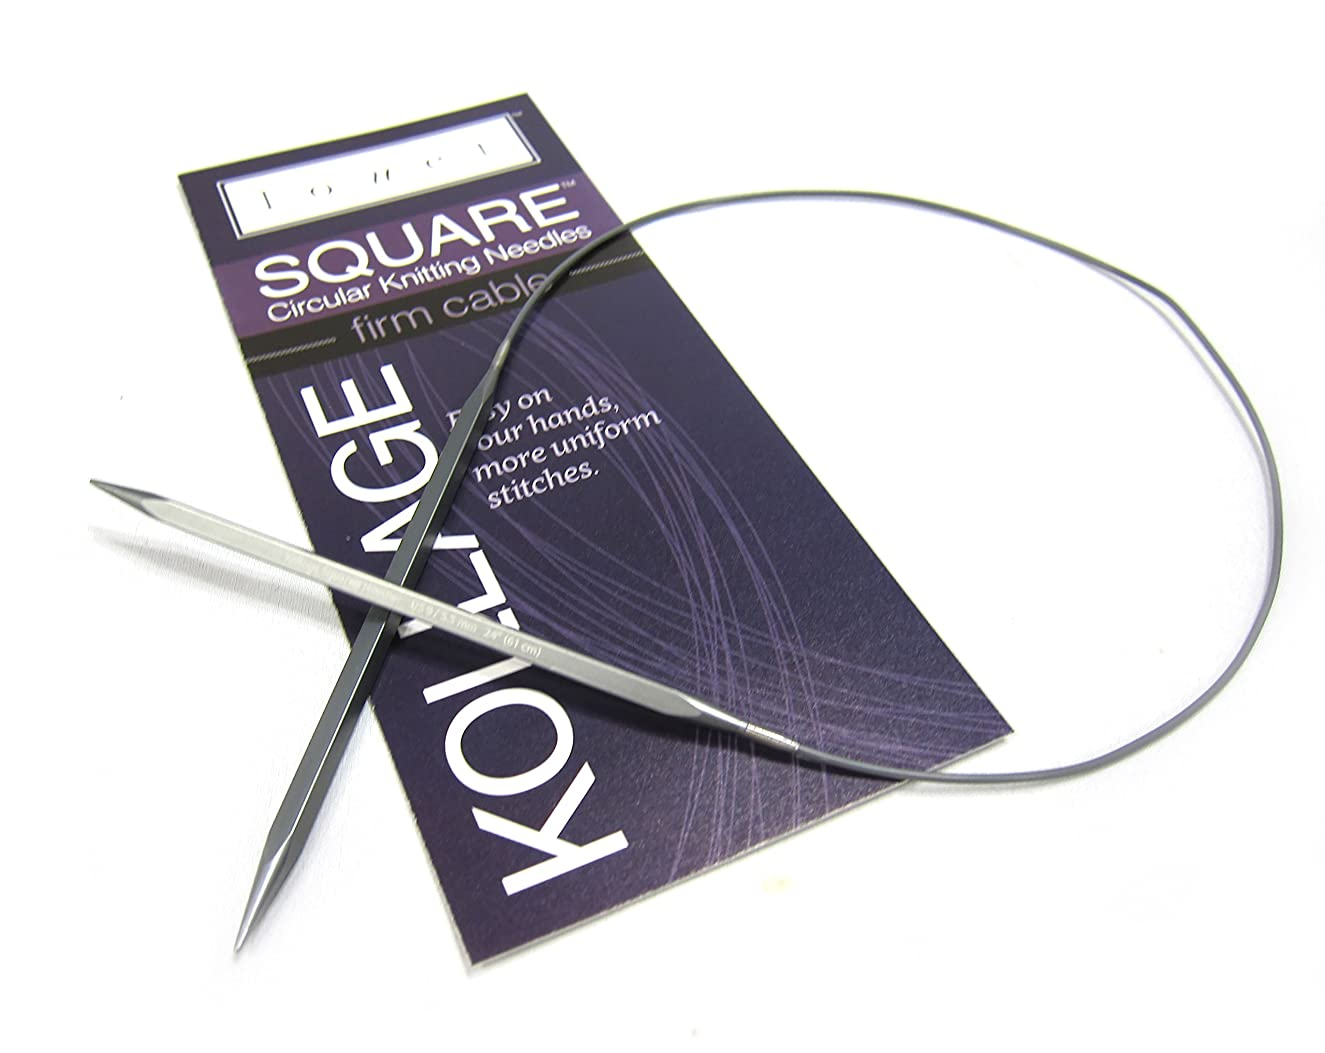 Kollage Square Circular 16-inch (41cm) Knitting Needle Firm Cable; Size US 2.5 (3.0mm)